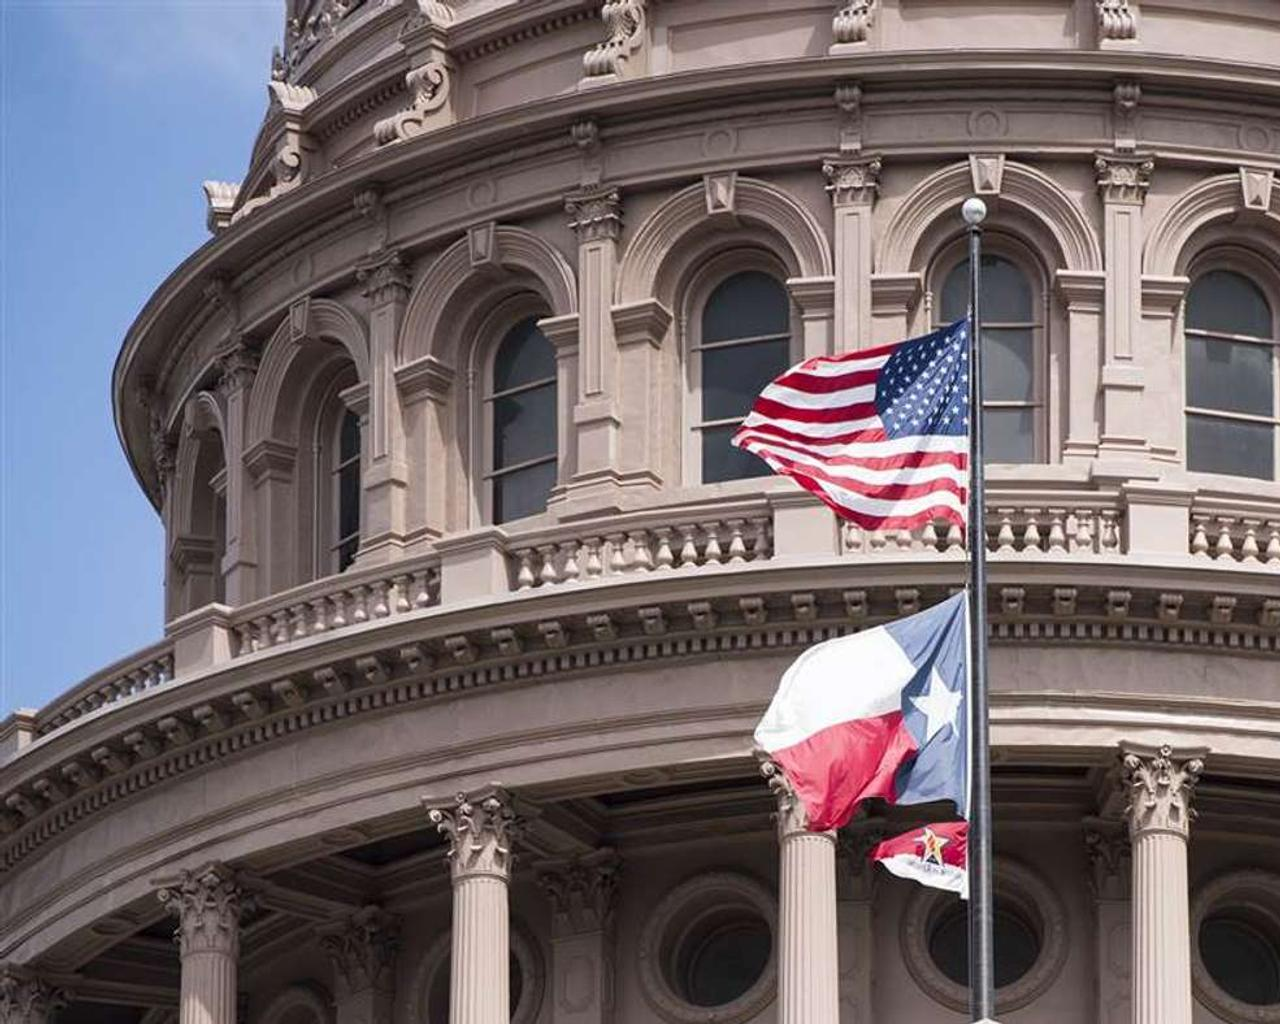 Texas bill could send parents to prison for providing gender-affirming care